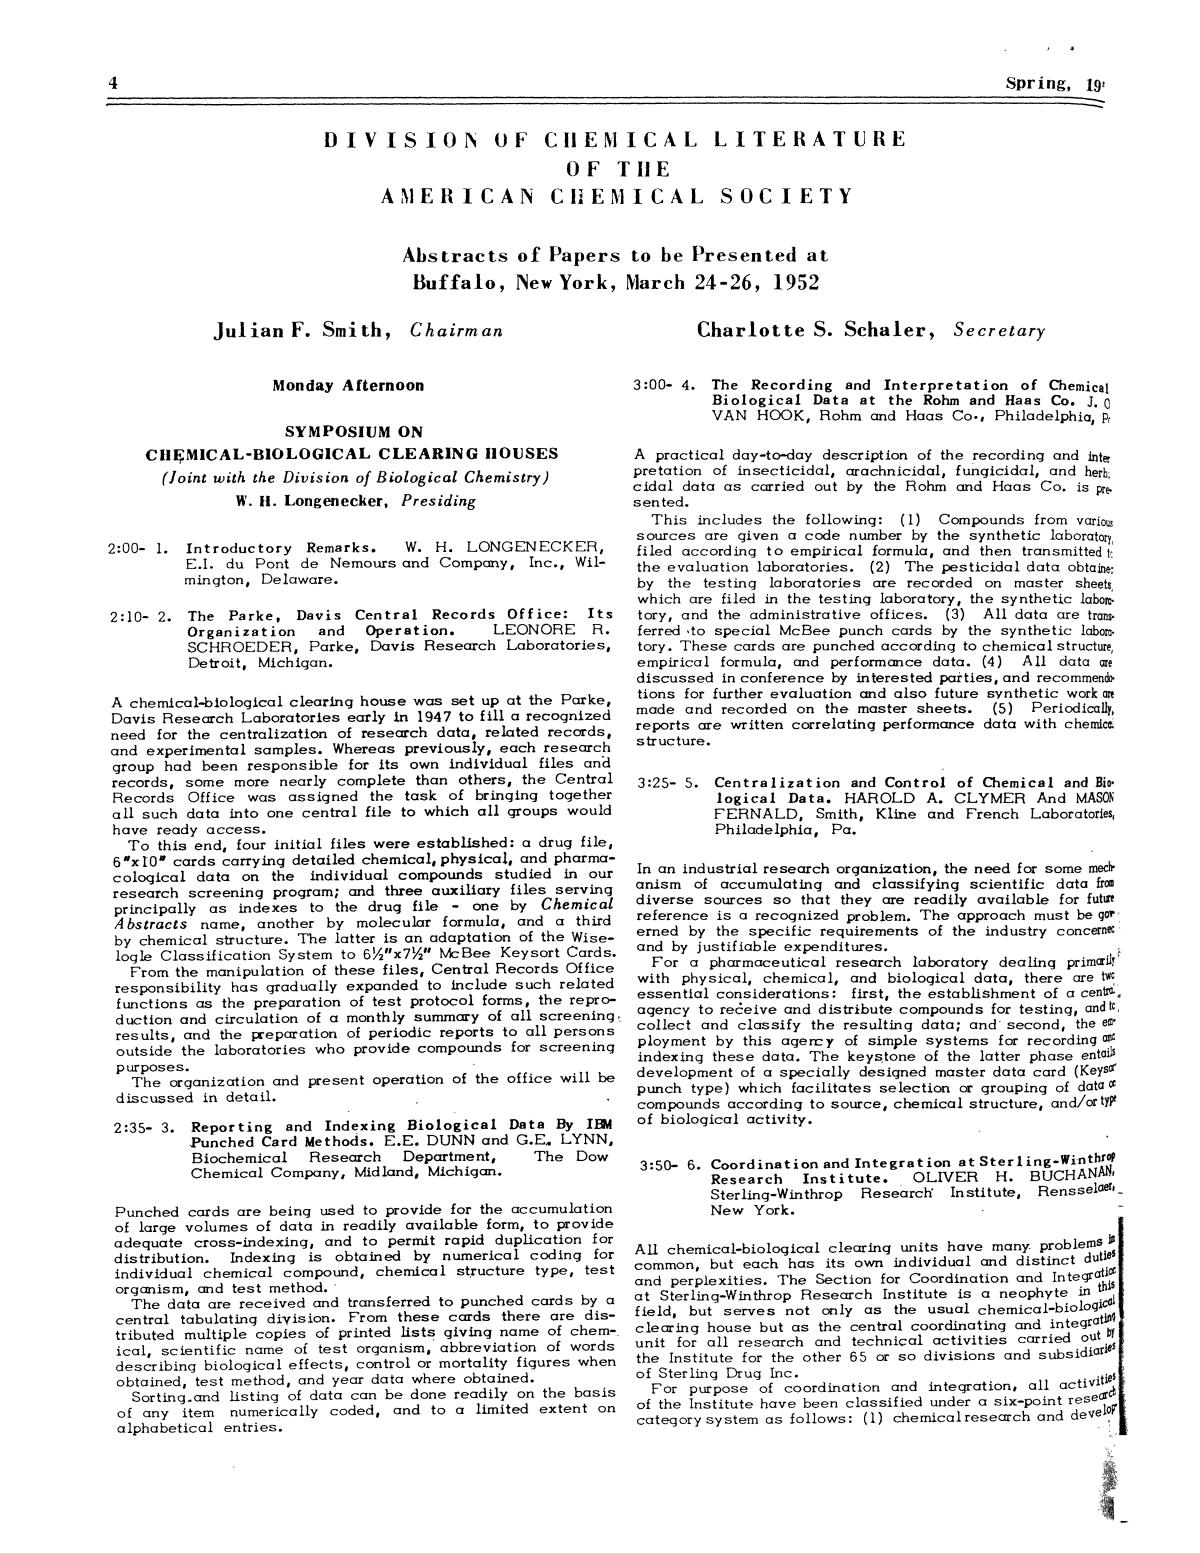 Chemical Literature, Volume 4, Number 1, Spring 1952                                                                                                      4